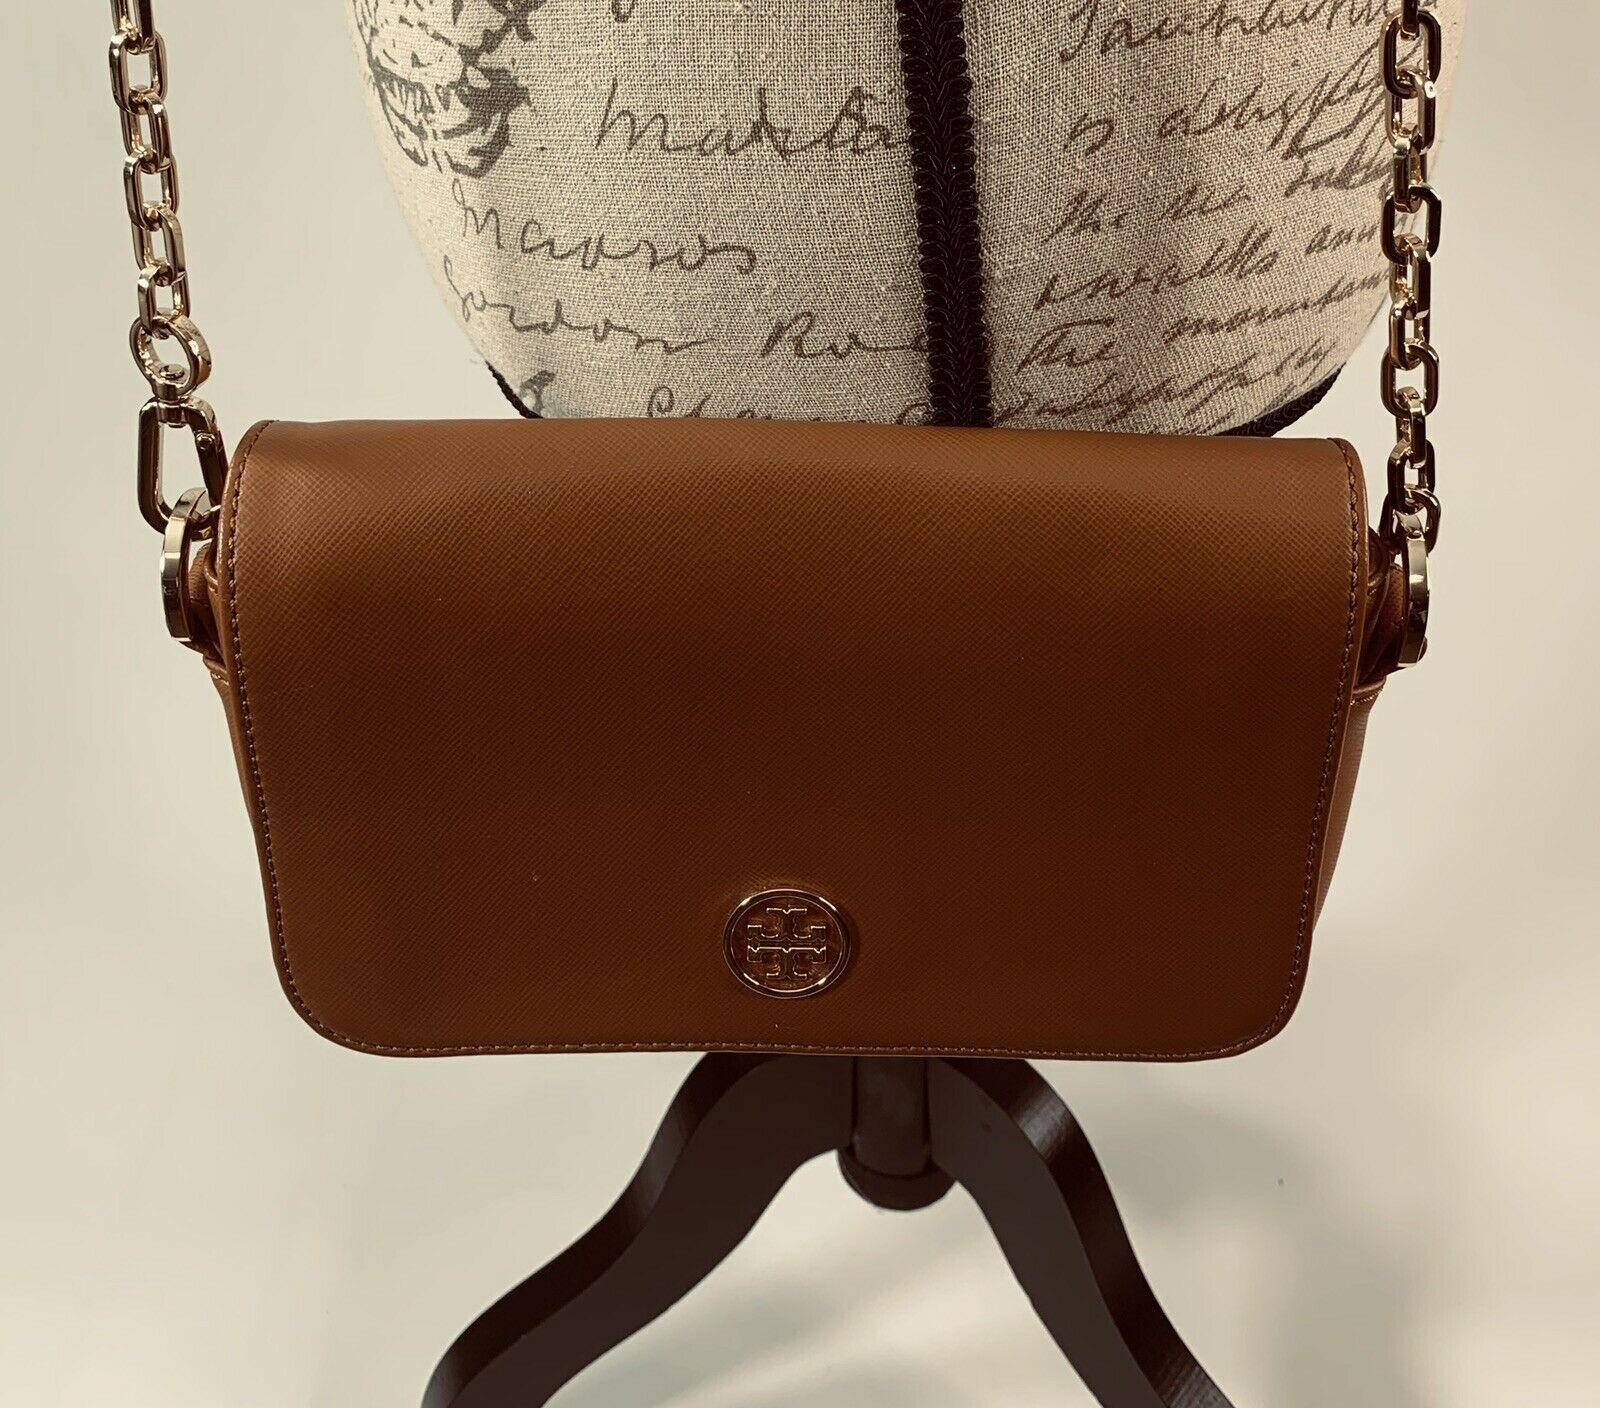 Tory Burch Robinson Chain Strap Tiger's Eye Brown Leather Crossbody Bag